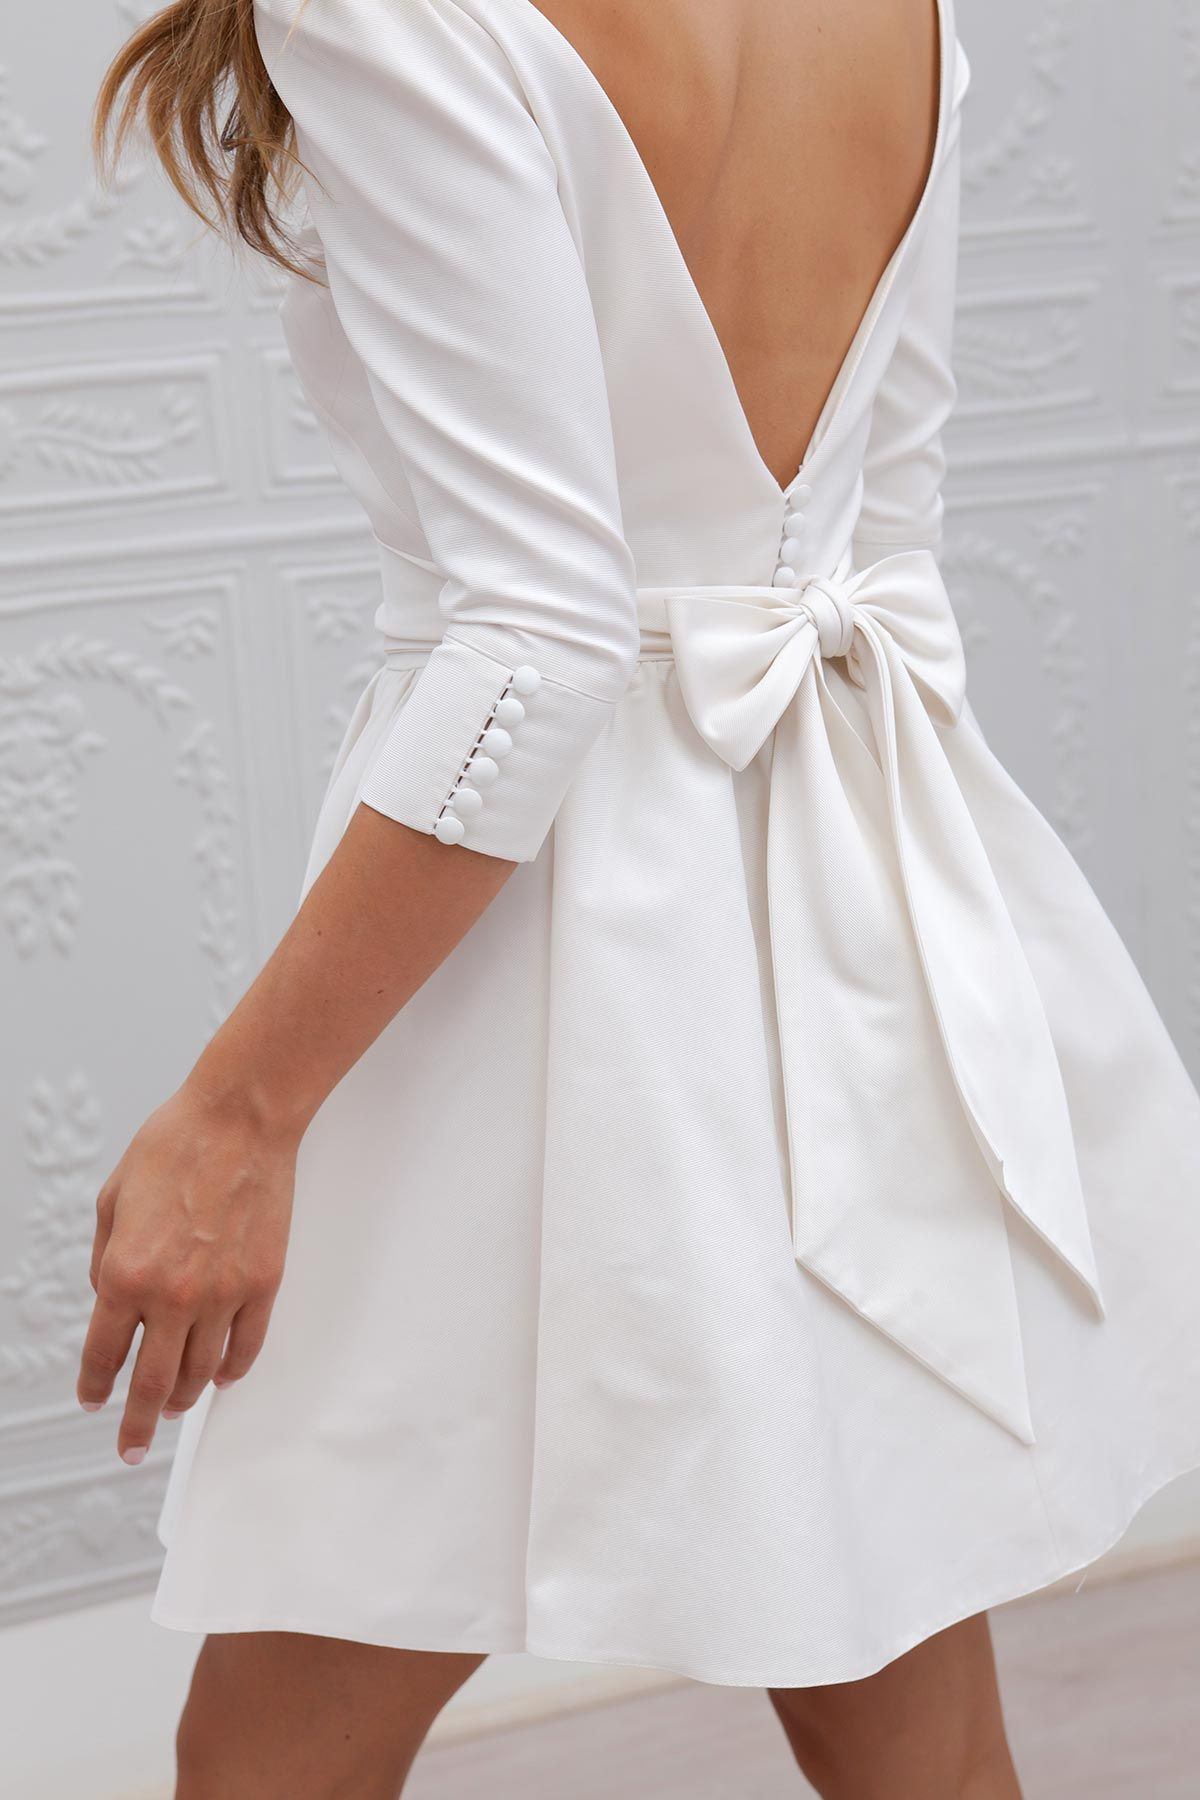 5450eeb2bc Kate_3detail-marie-laporte-creatrice-collection-2015 White Dress, Backless,